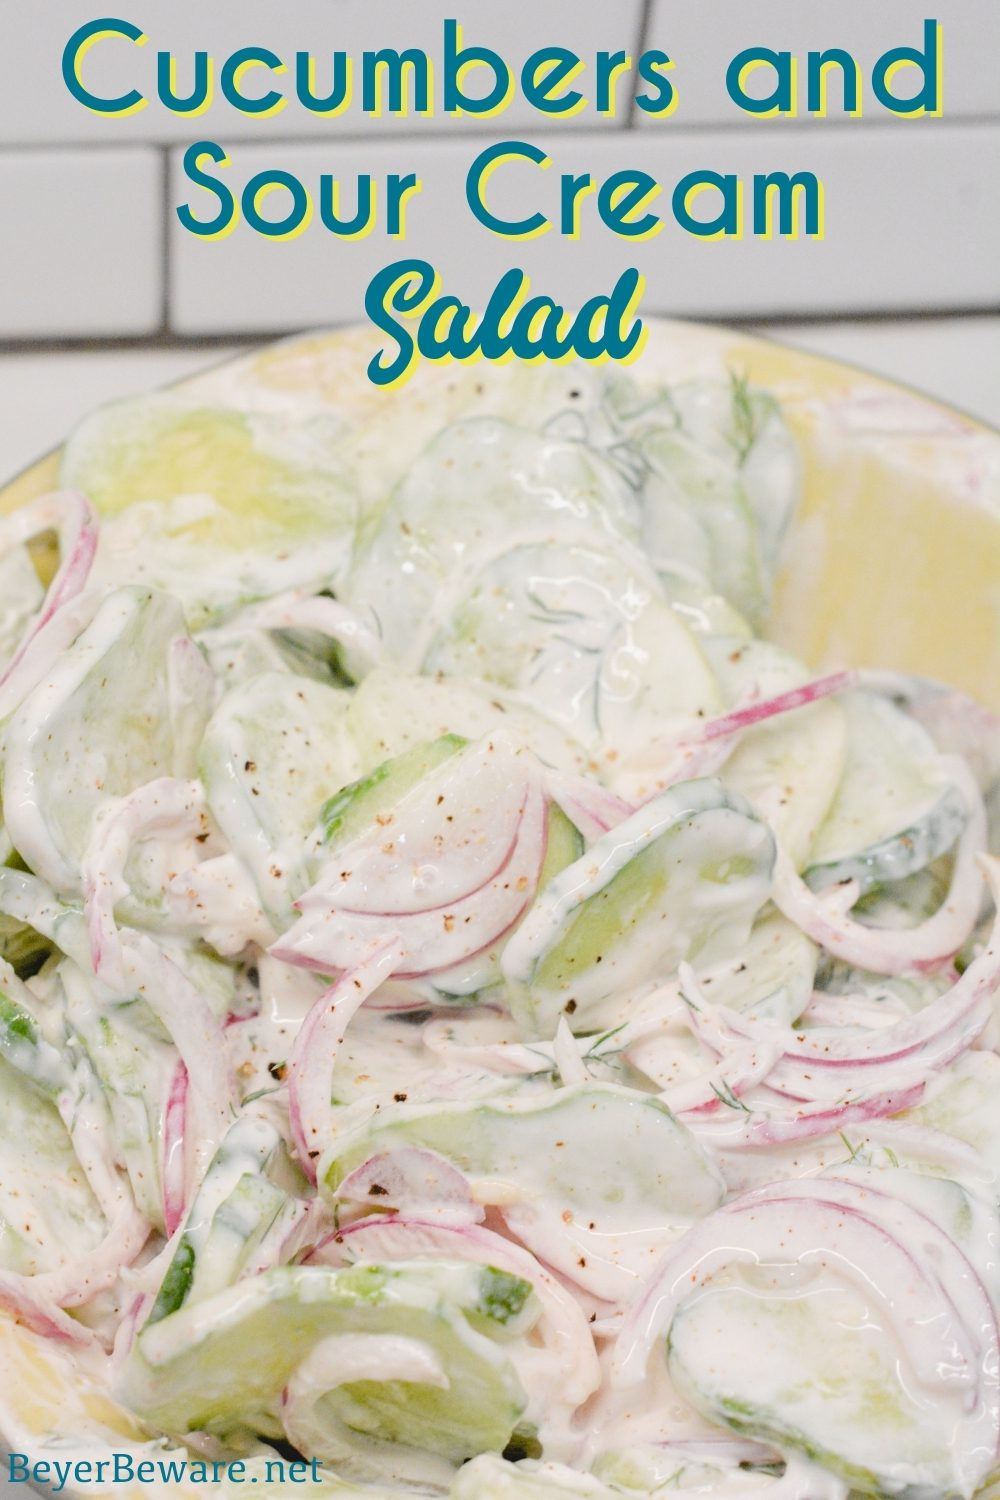 Cucumbers and sour cream salad is a creamy cucumber salad that is tangy with a hint of spice from the combination of cucumbers, onions, sour cream, hot sauce, dill weed, and vinegar.